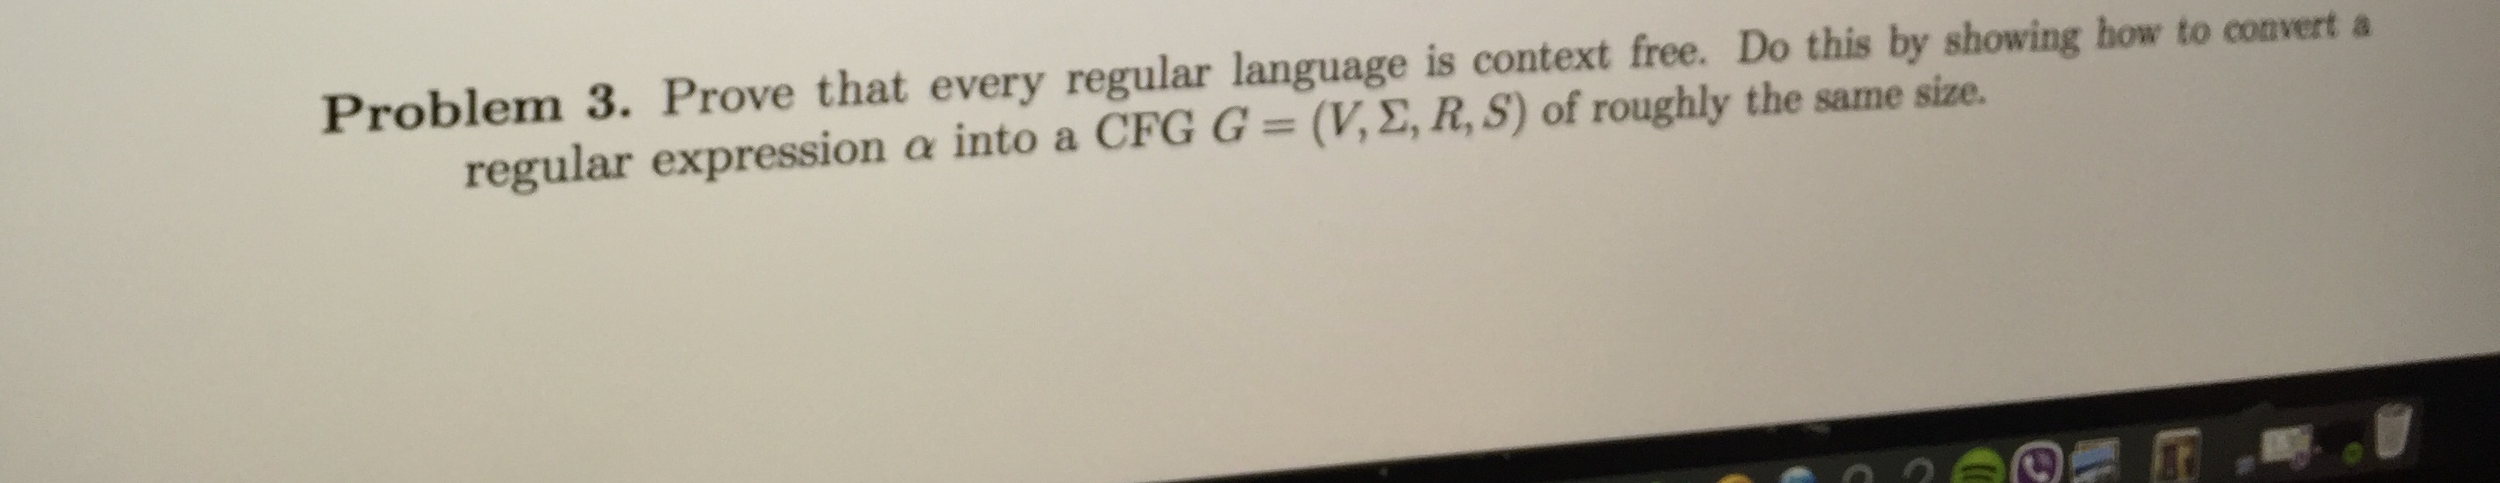 Prove that every regular language is context